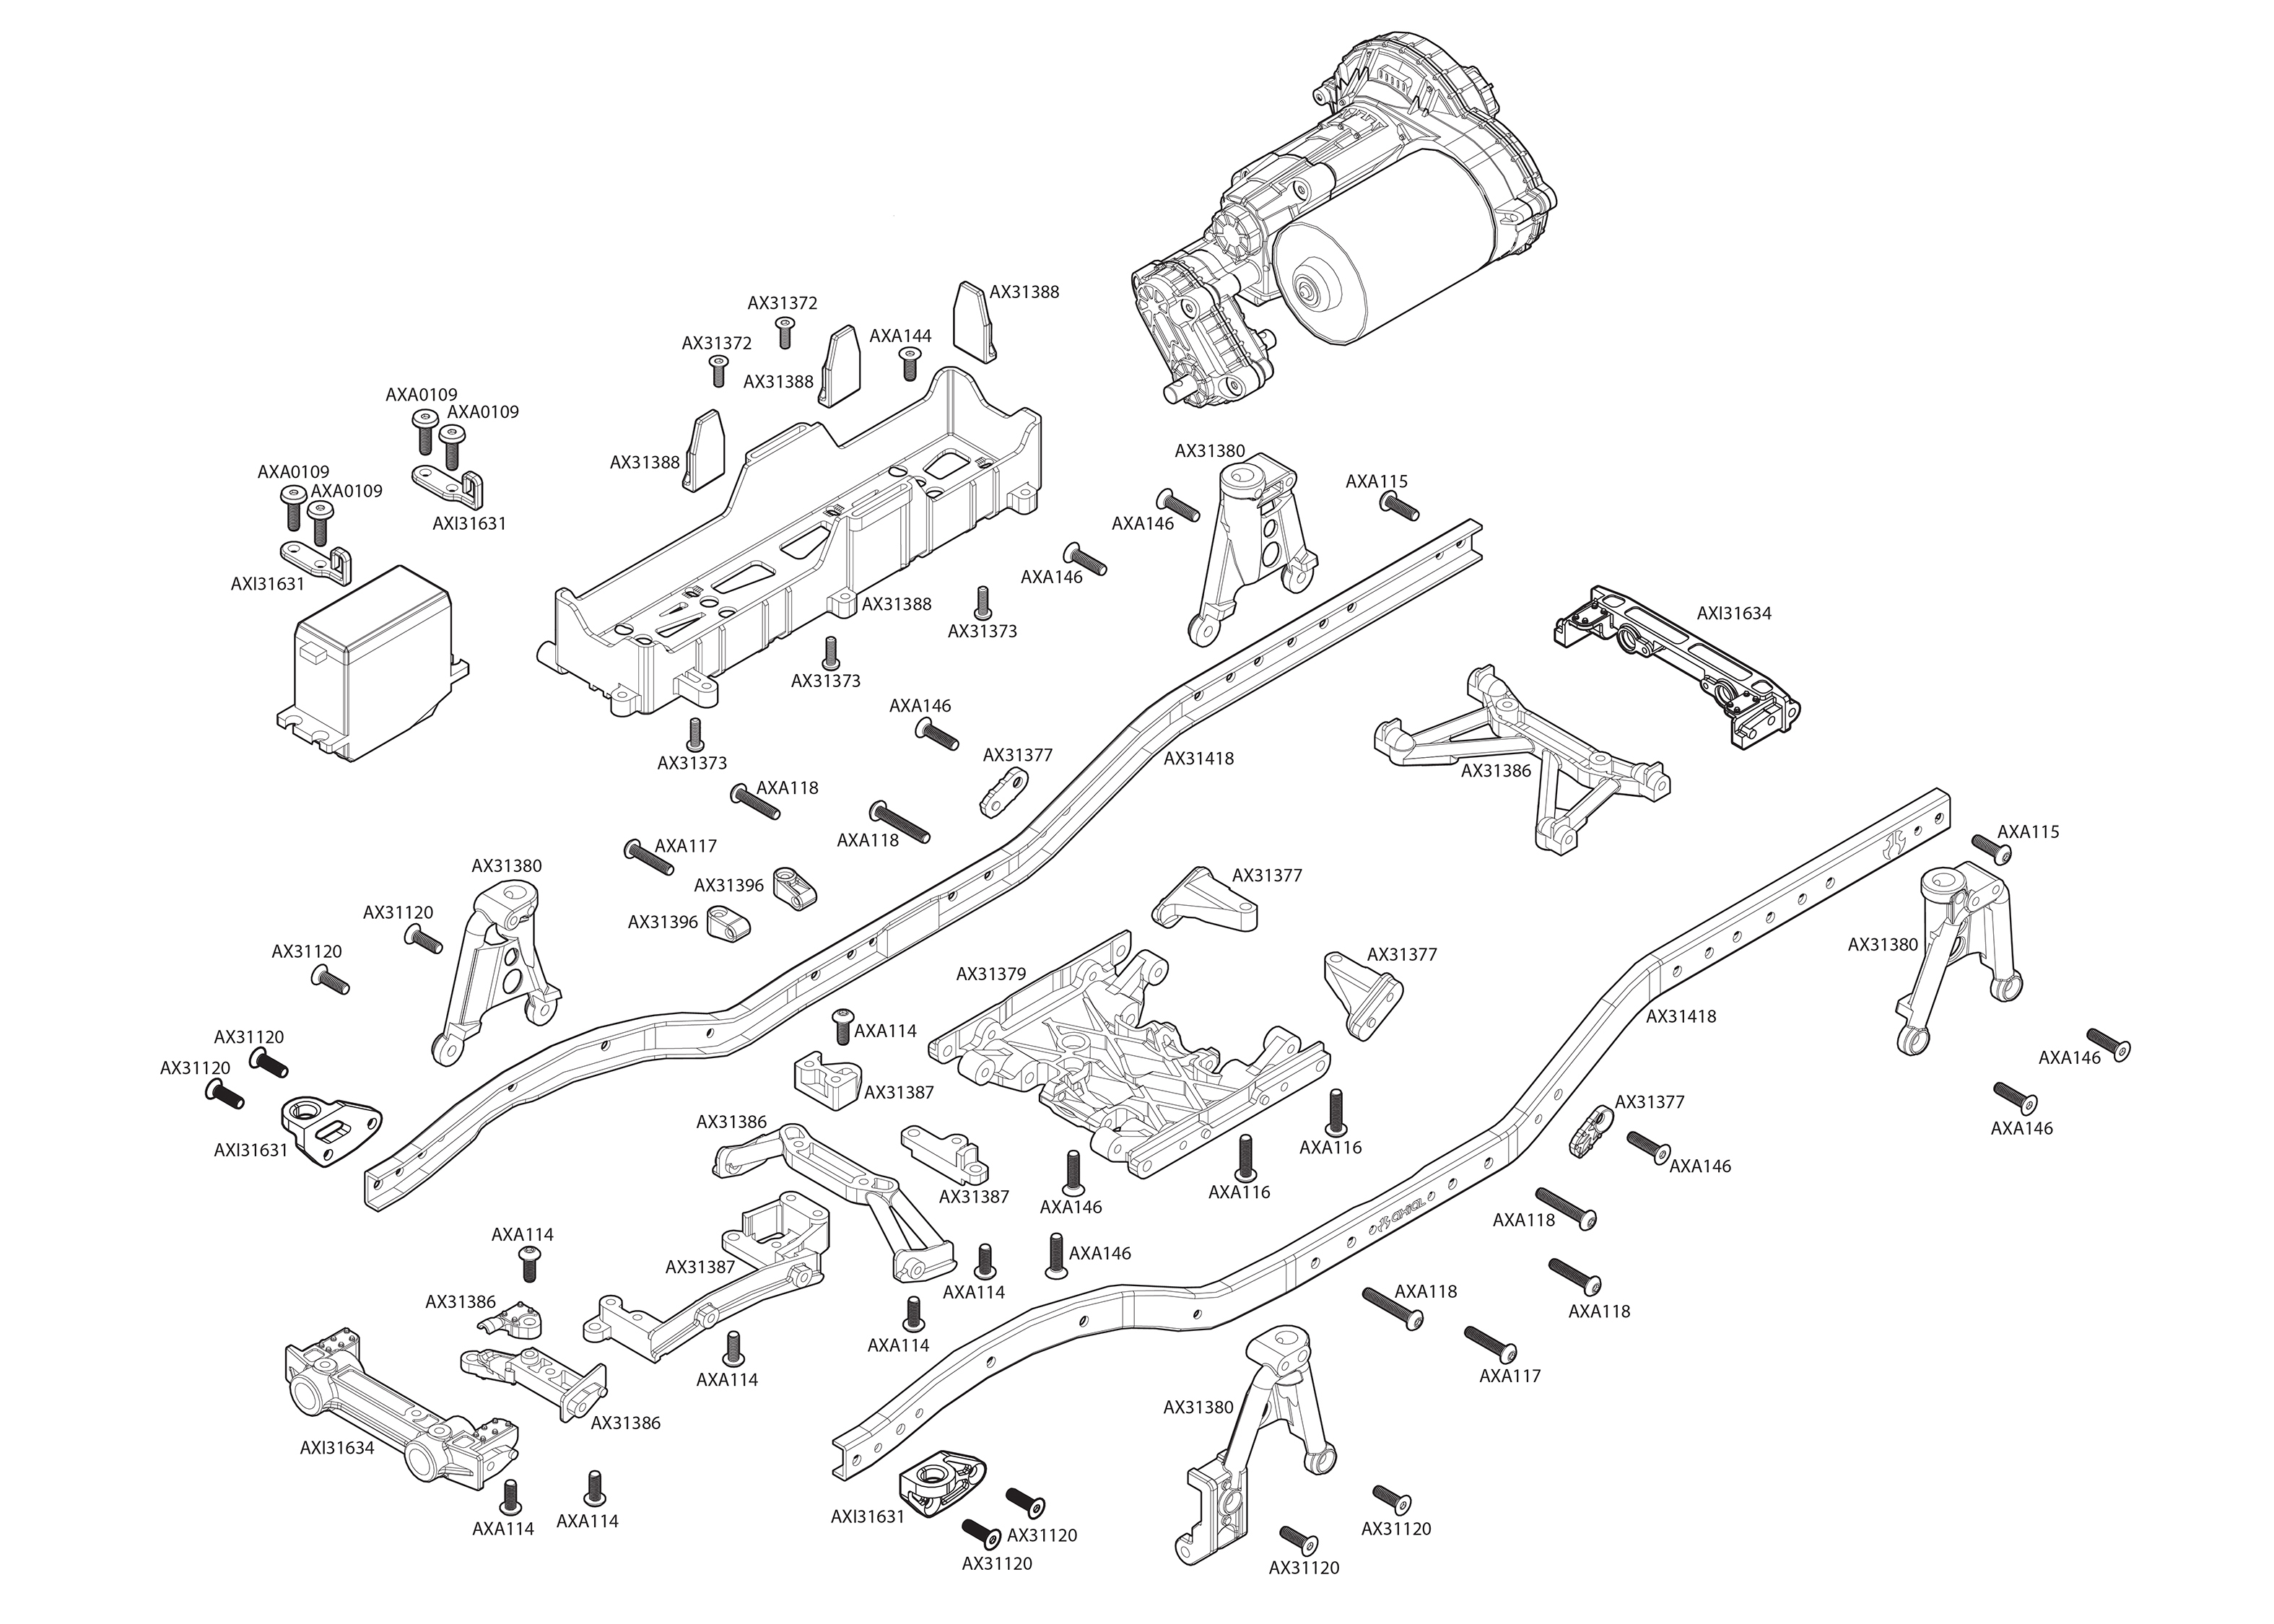 Exploded view: Axial SCX10 II UMG10 1:10 Kit - Chassis | Astra